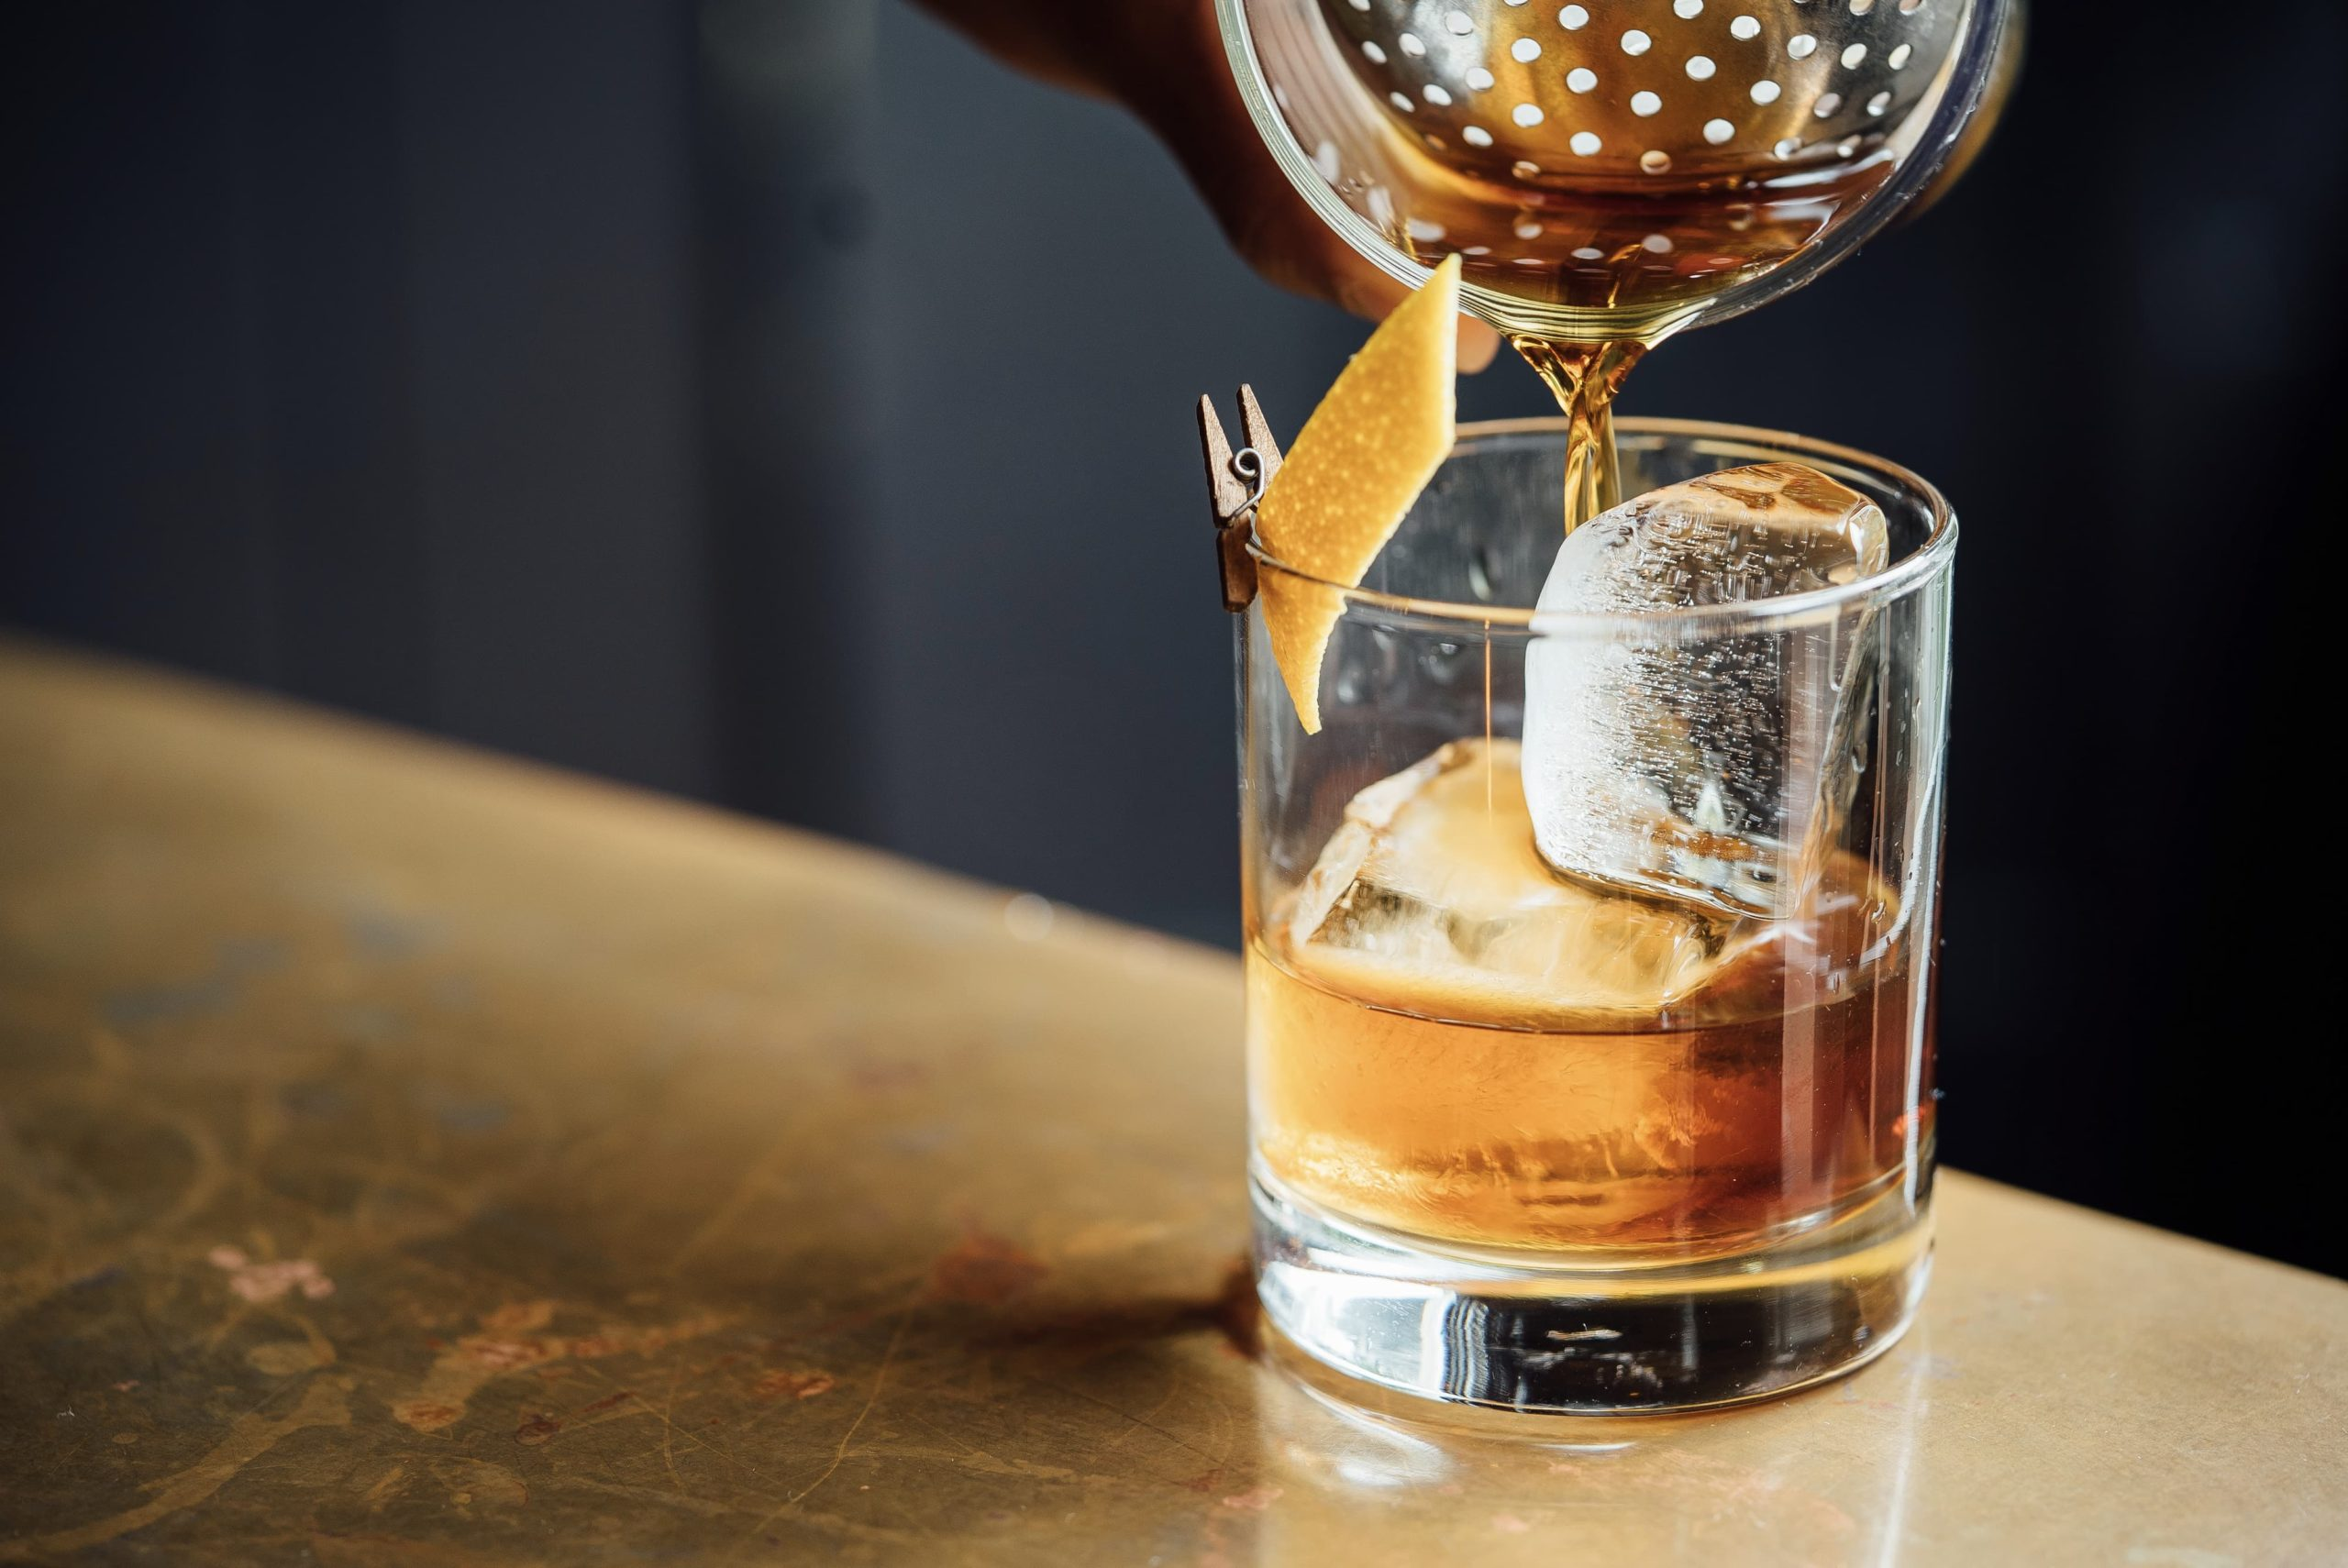 Pouring cocktail into glass